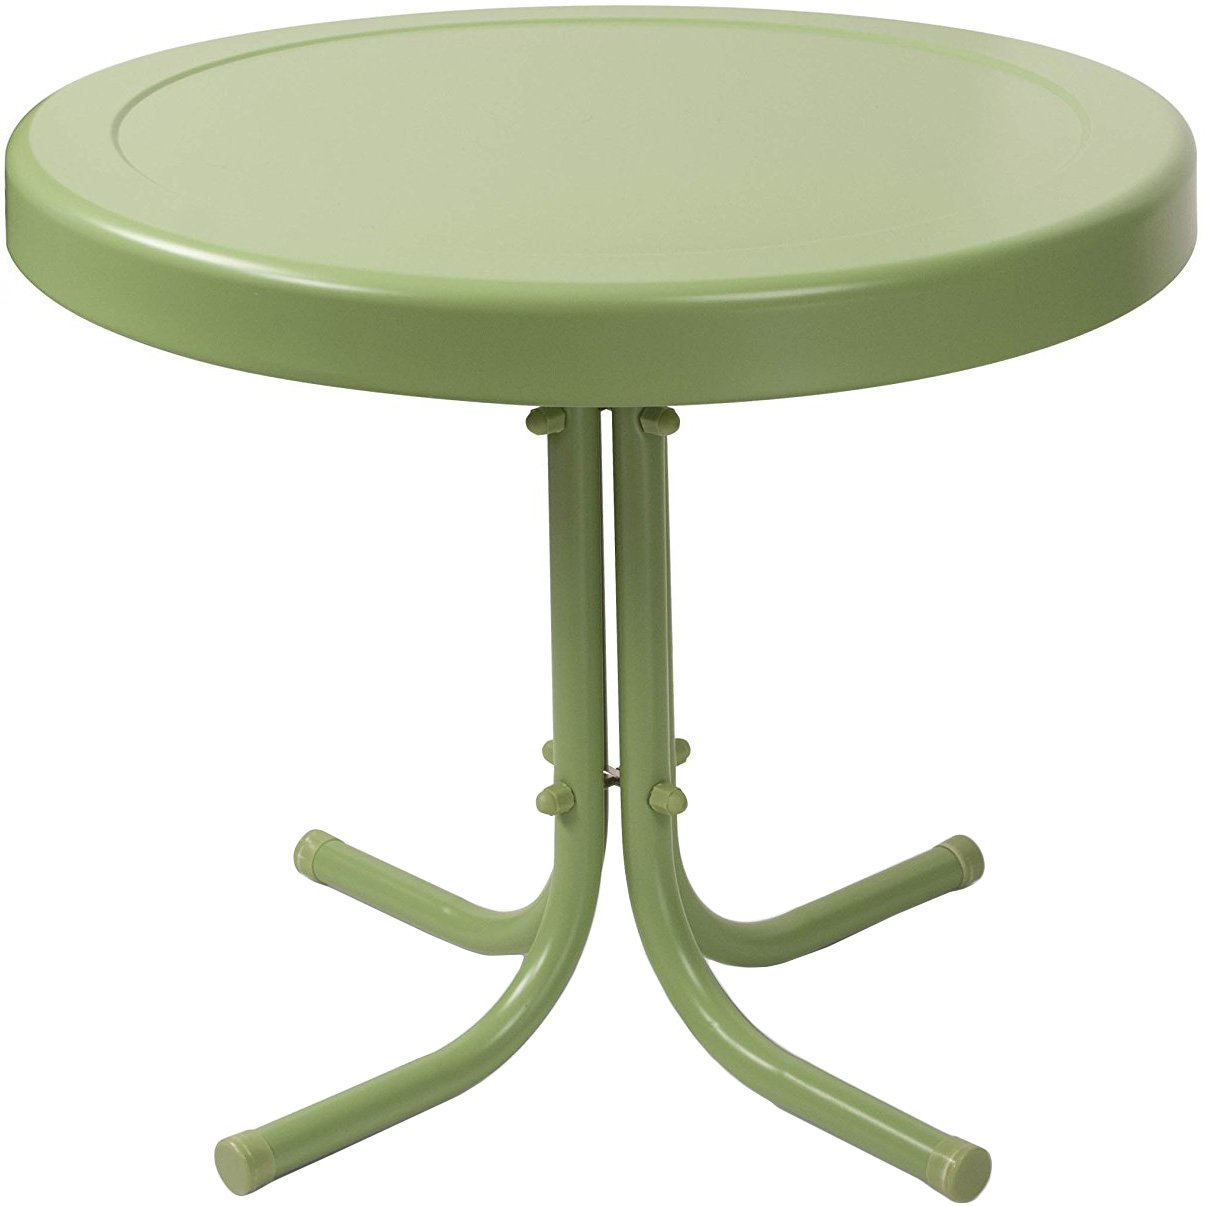 crosley furniture gracie retro inch metal outdoor end tables side table oasis green kitchen dining lamp shade build indoor dog pen tempered glass top replacement leather look